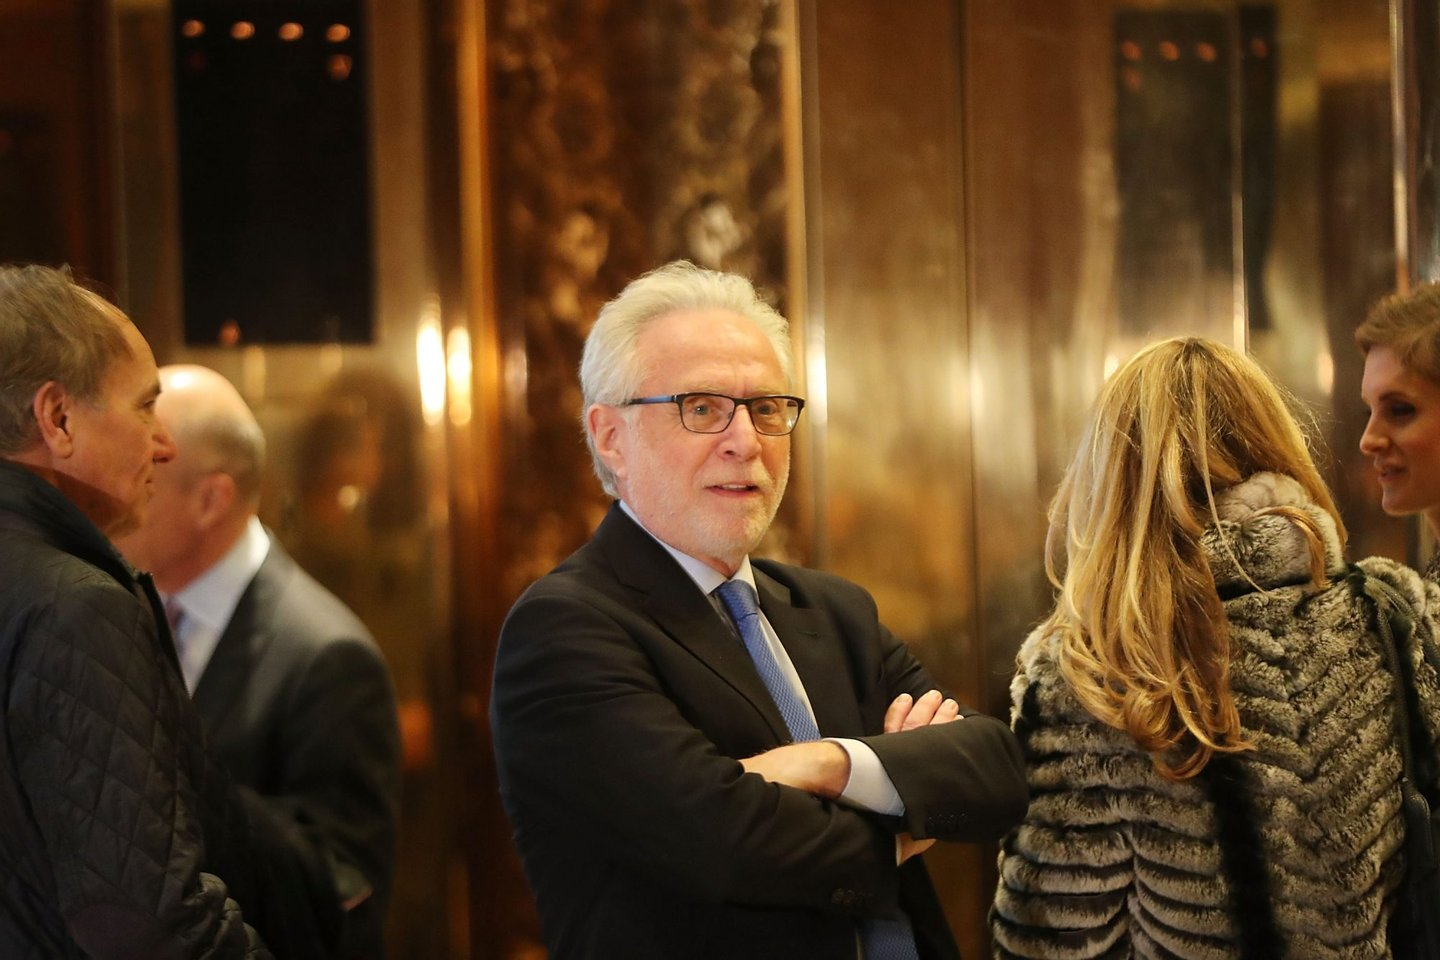 NEW YORK, NY - NOVEMBER 21: CNN's Wolf Blitzer arrives at Trump Tower on November 21, 2016 in New York City. President-elect Donald Trump and his transition team are in the process of filling cabinet and other high level positions for the new administration. (Photo by Spencer Platt/Getty Images)